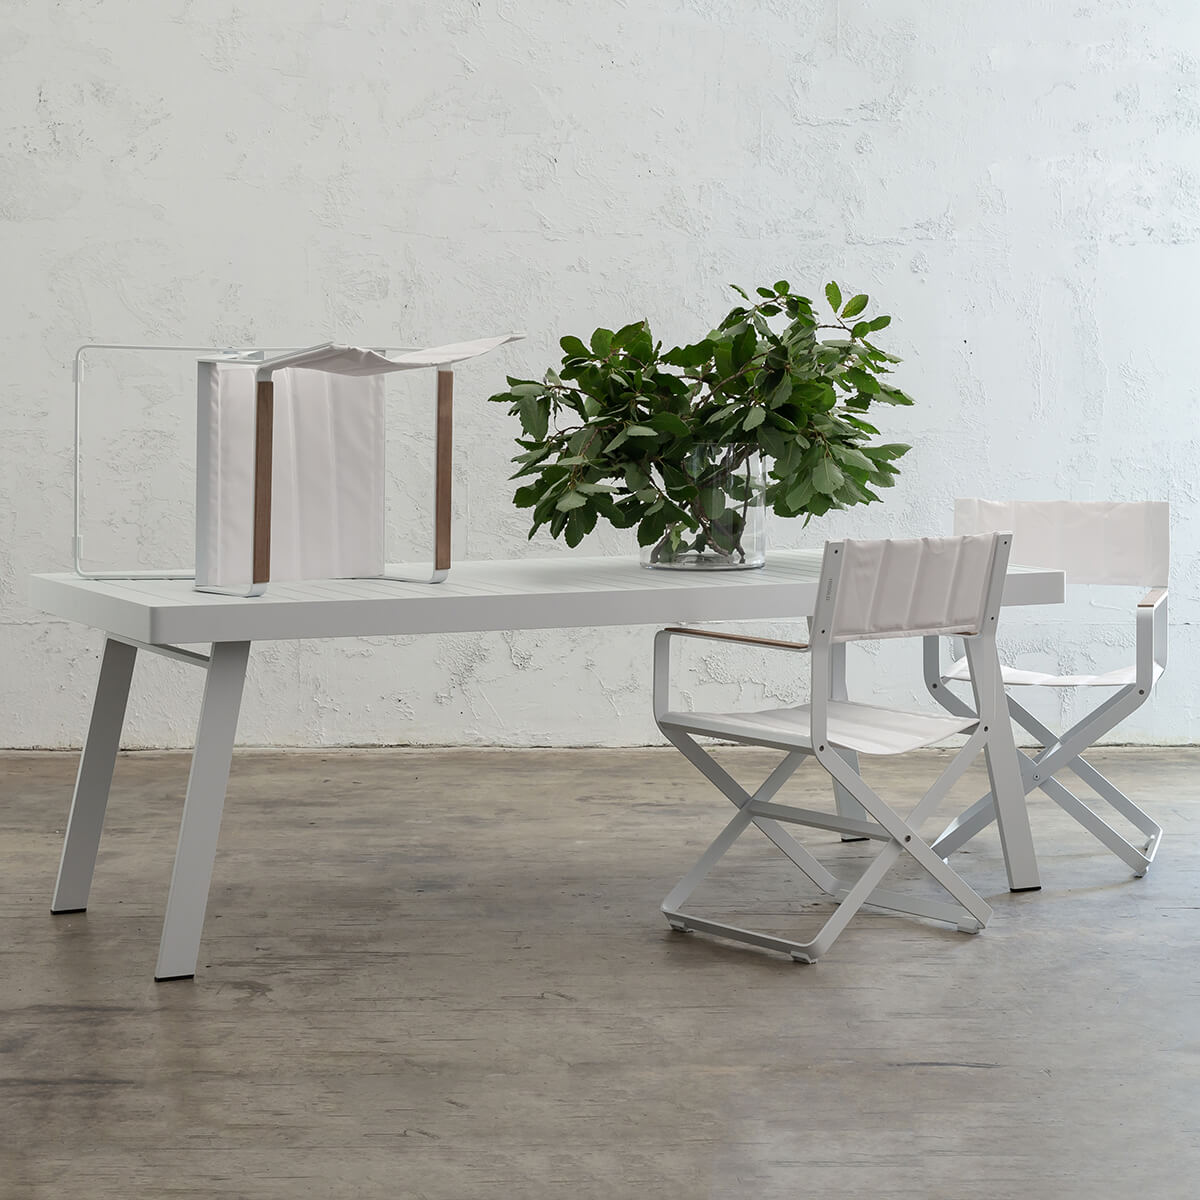 PALOMA OUTDOOR SLATTED DINING TABLE   |  WHITE ALUMINIUM  |  220CM